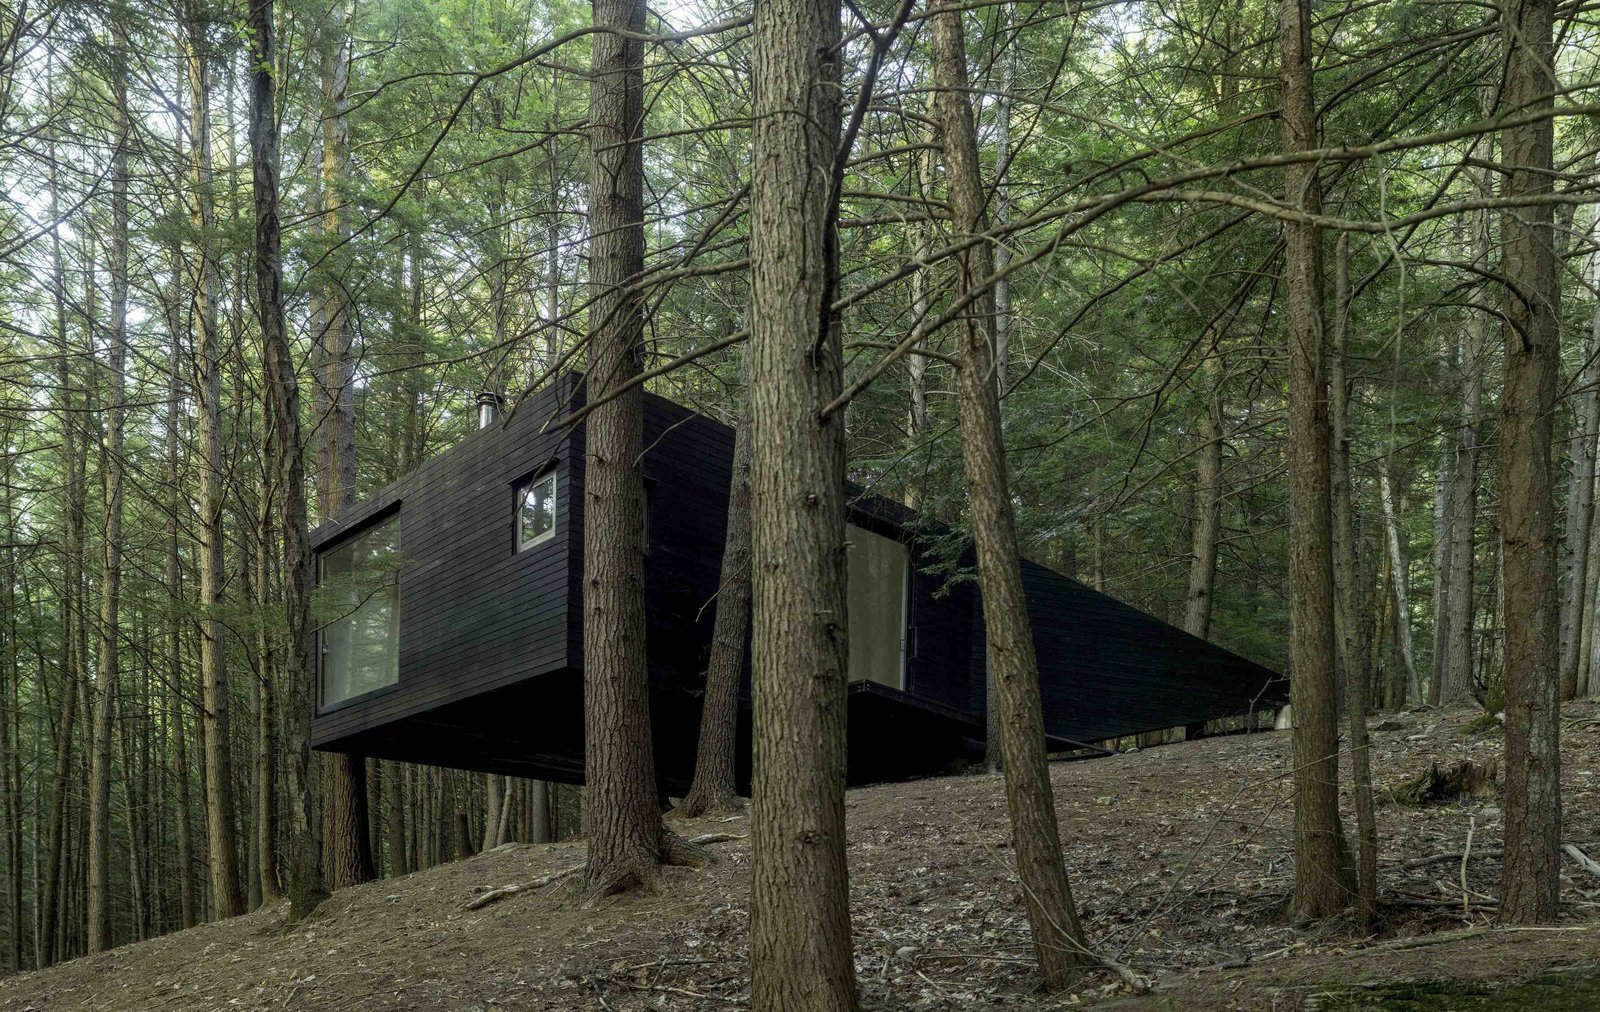 Exterior, Cabin Building Type, Wood Siding Material, and Flat RoofLine In a remote second-growth forest in Sullivan County, New York, is an off-the-grid tree house that was constructed with the help of the trees around it.    Sited on a steep, sloping hill surrounded by trees, the 360-square-foot project was designed to accommodate a limited $20,000 construction budget—and to be approachable enough that amateur weekend builders could construct it.   Architects Mike Jacobs, Biayna Bogosian, Forrest Jessee, Leopold Lambert, and Luis Gutierrez of award-winning New York practice Jacobschang Architecture designed a tree house structure that overcame the challenge of the site's steep topography.  Photos from A Dramatic Tree House by Budget-Conscious DIY Builders